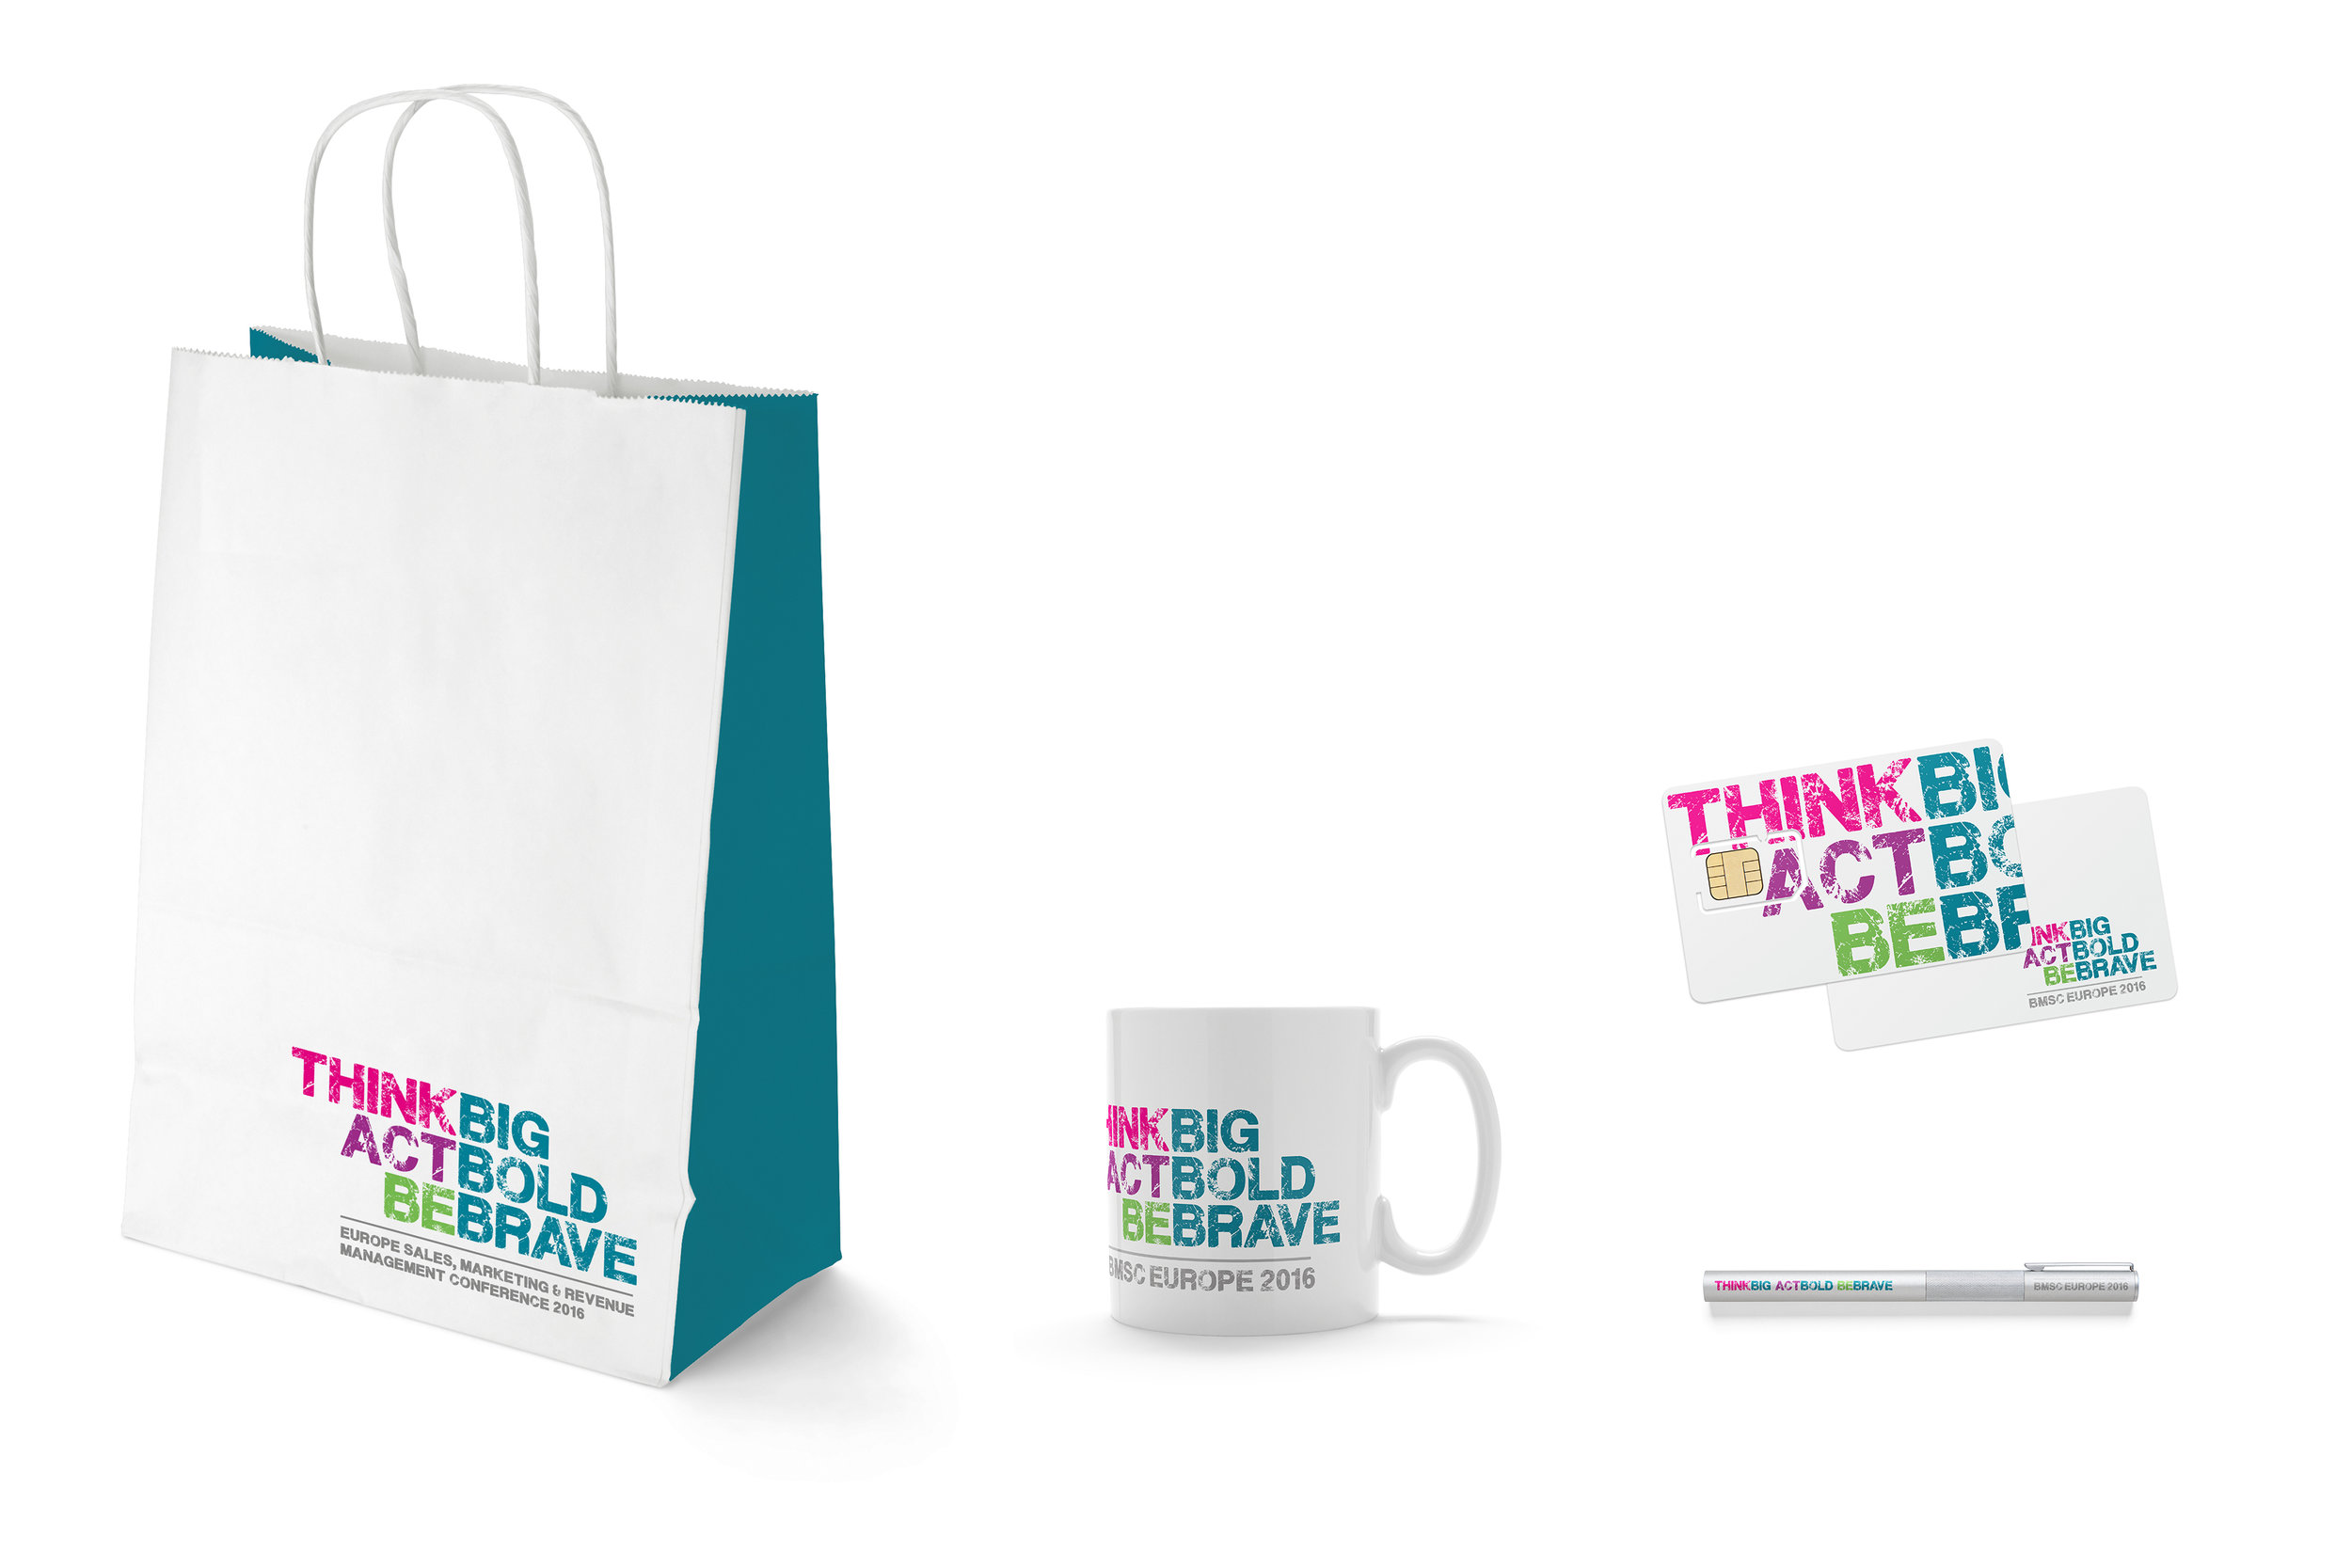 Cactus Design Studio Conference Branding Bag mug cart pen